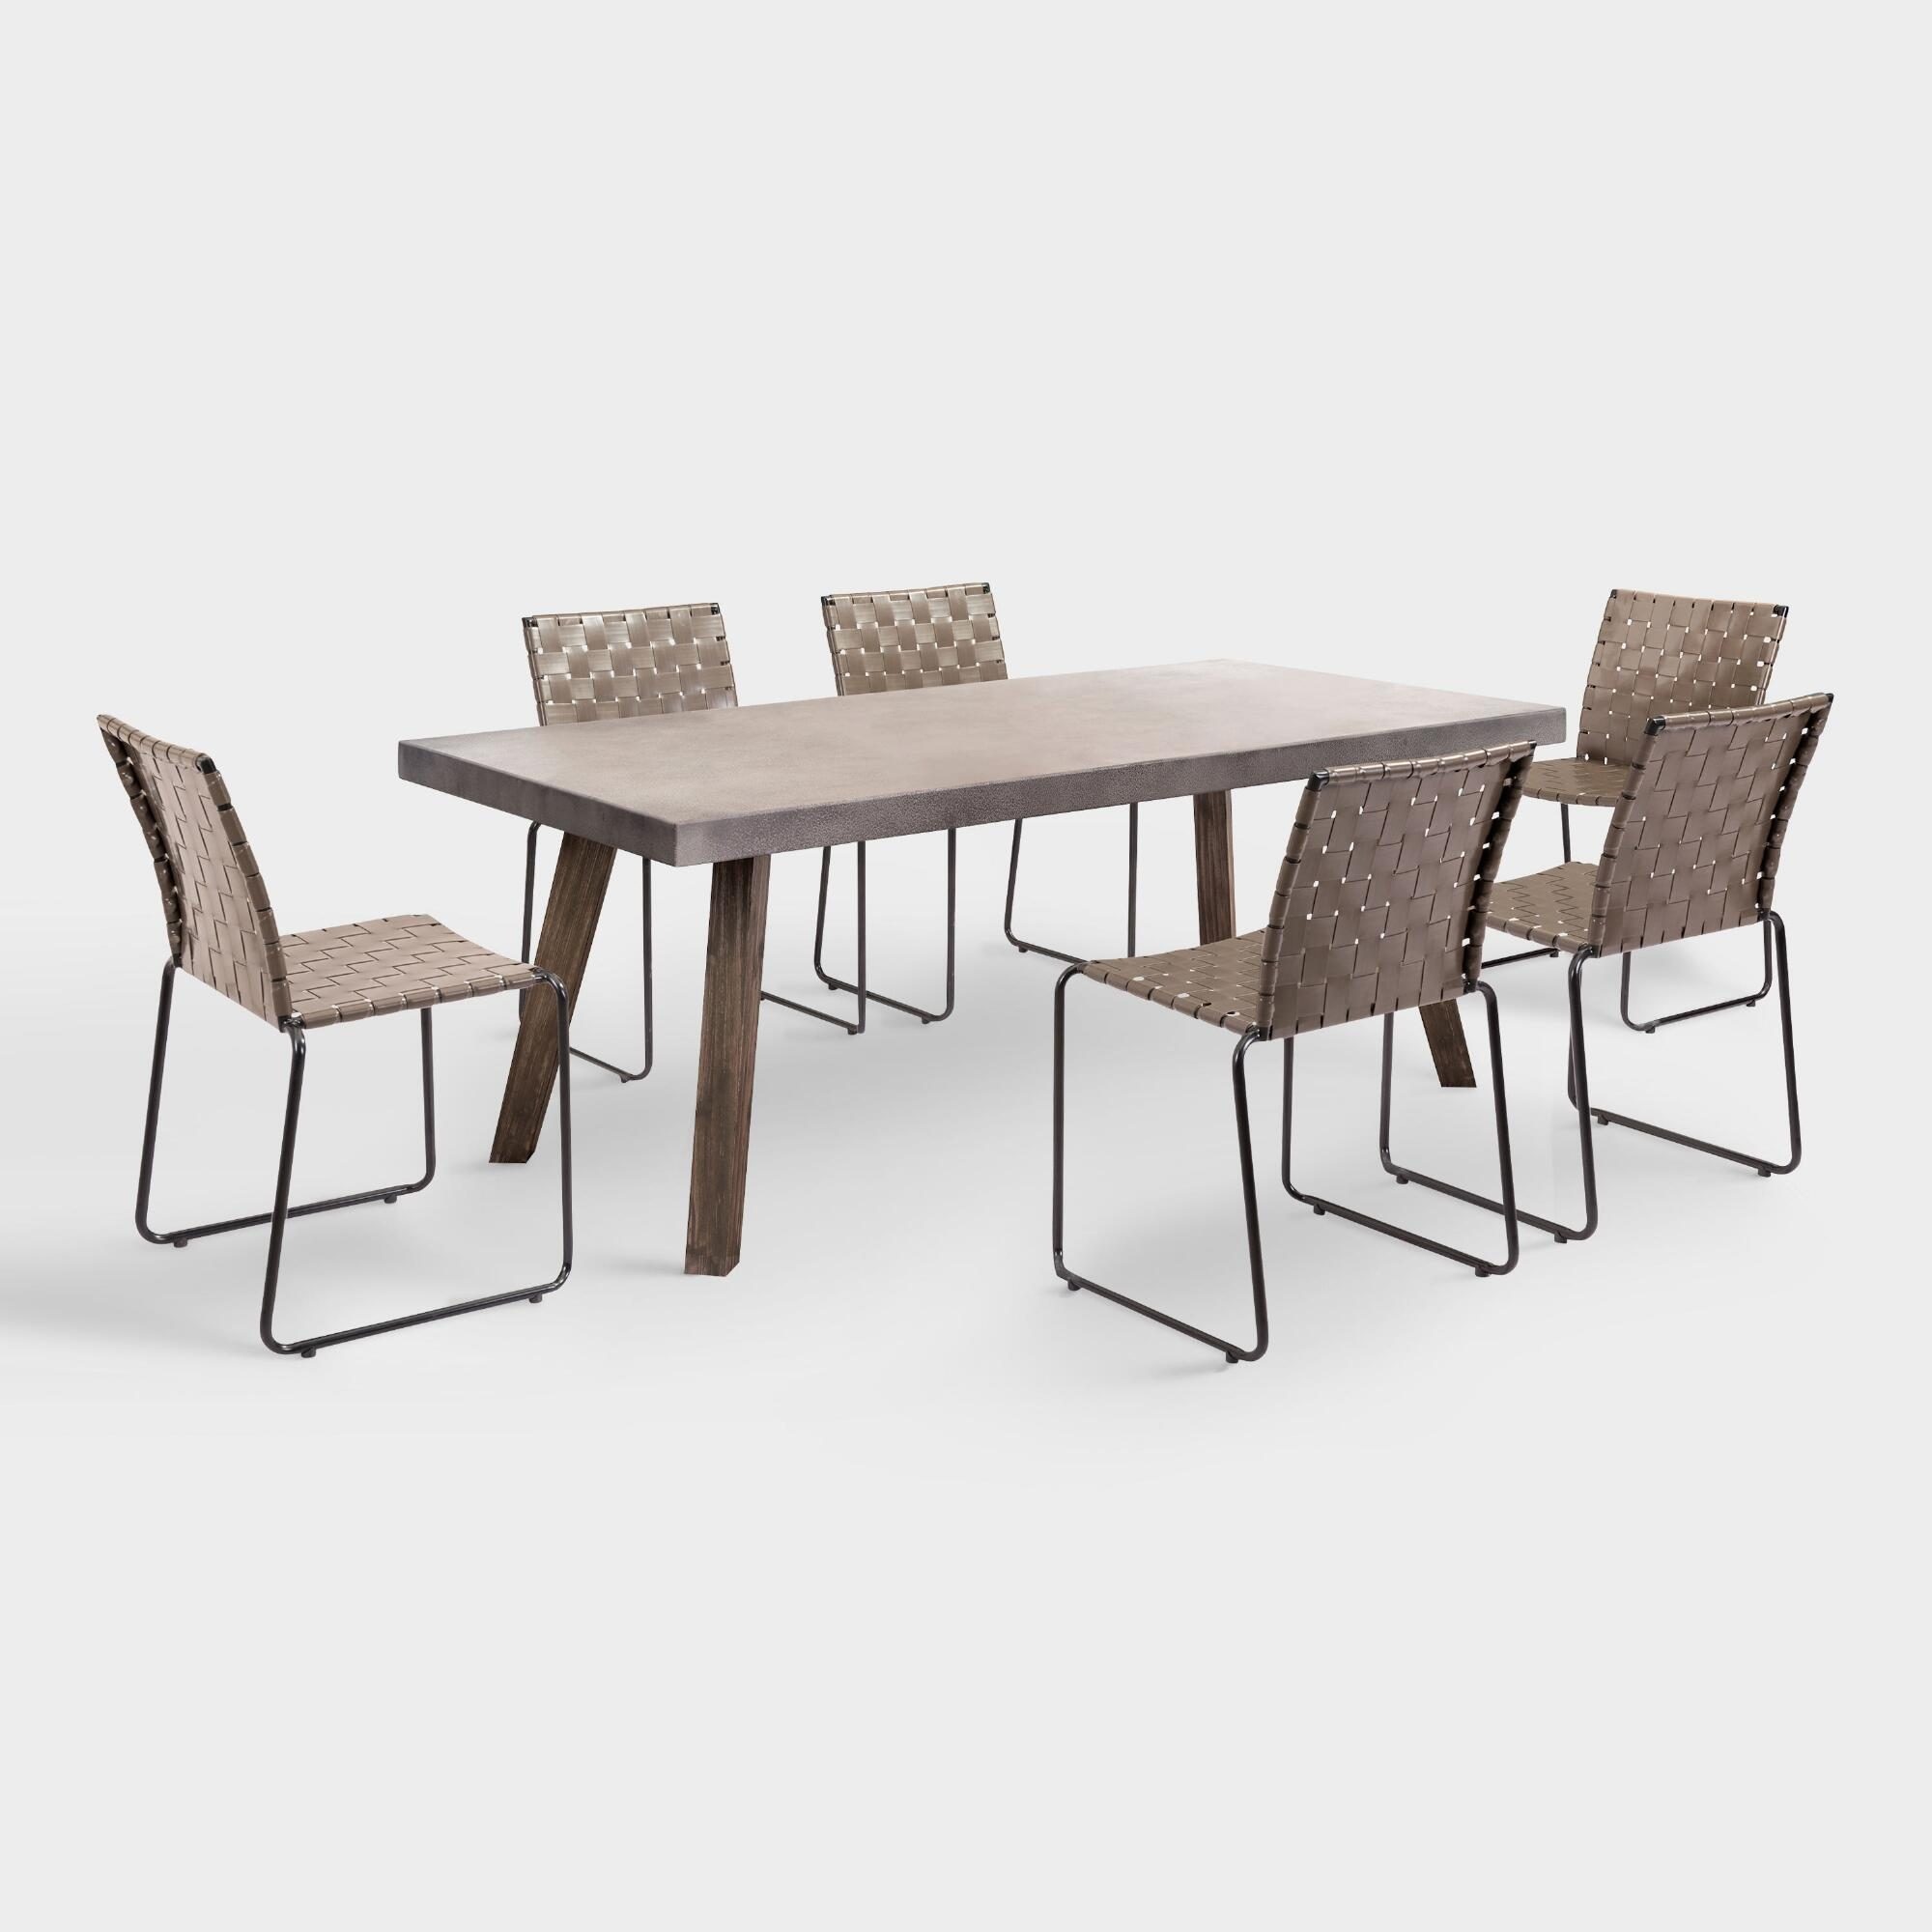 Armelle Outdoor Patio Dining Collection by World Market